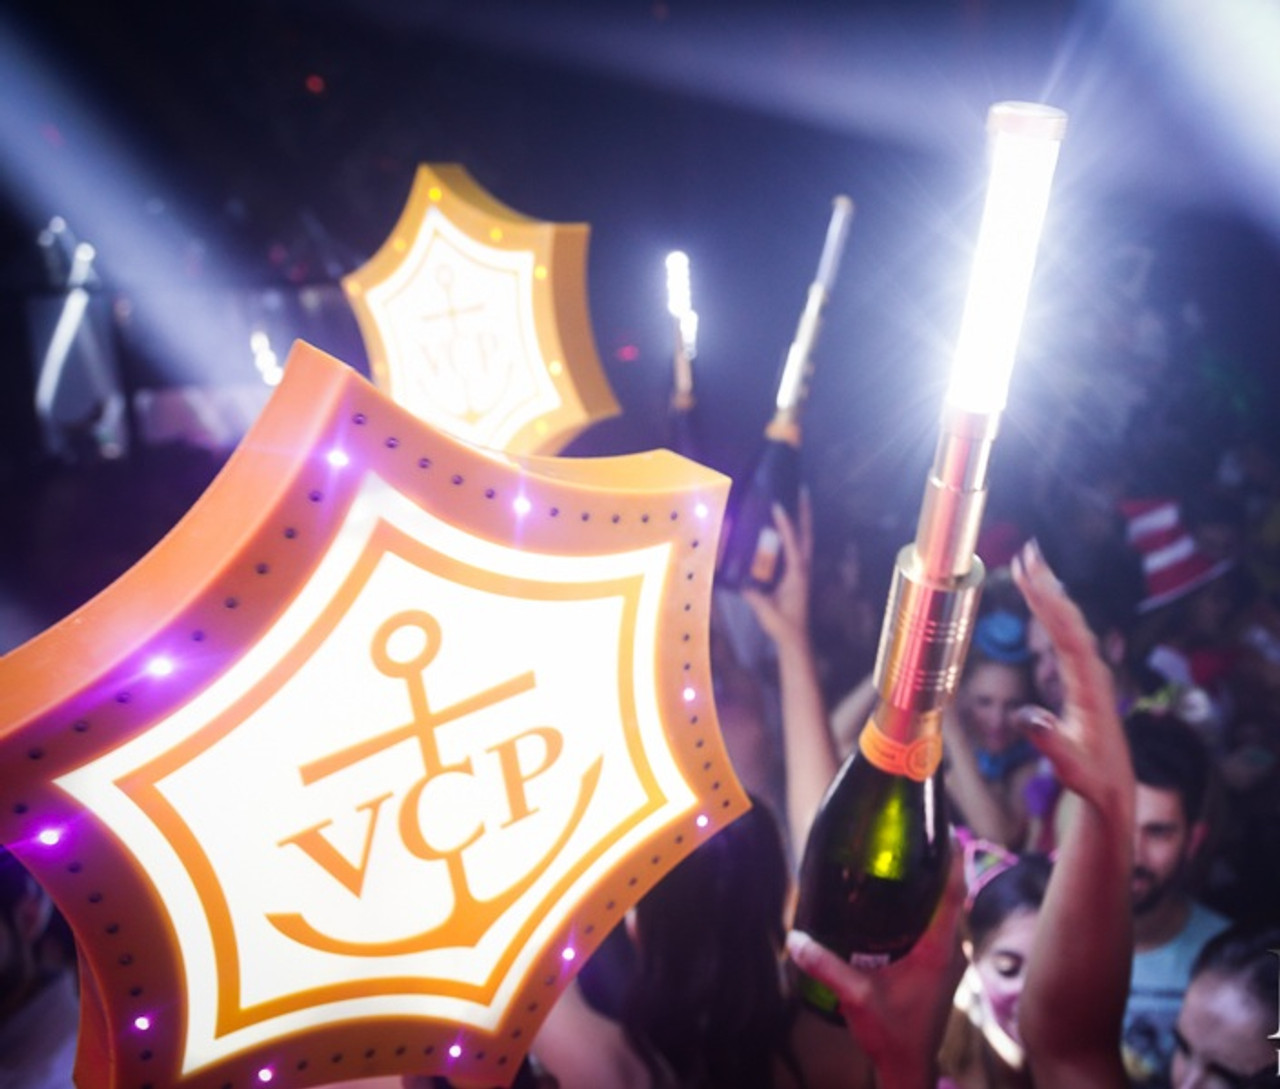 LED, Strobe, Batton, Bottle, Top, Topper, attachment, Sparkler, Bottle service, Nitesparx, Nite sparx